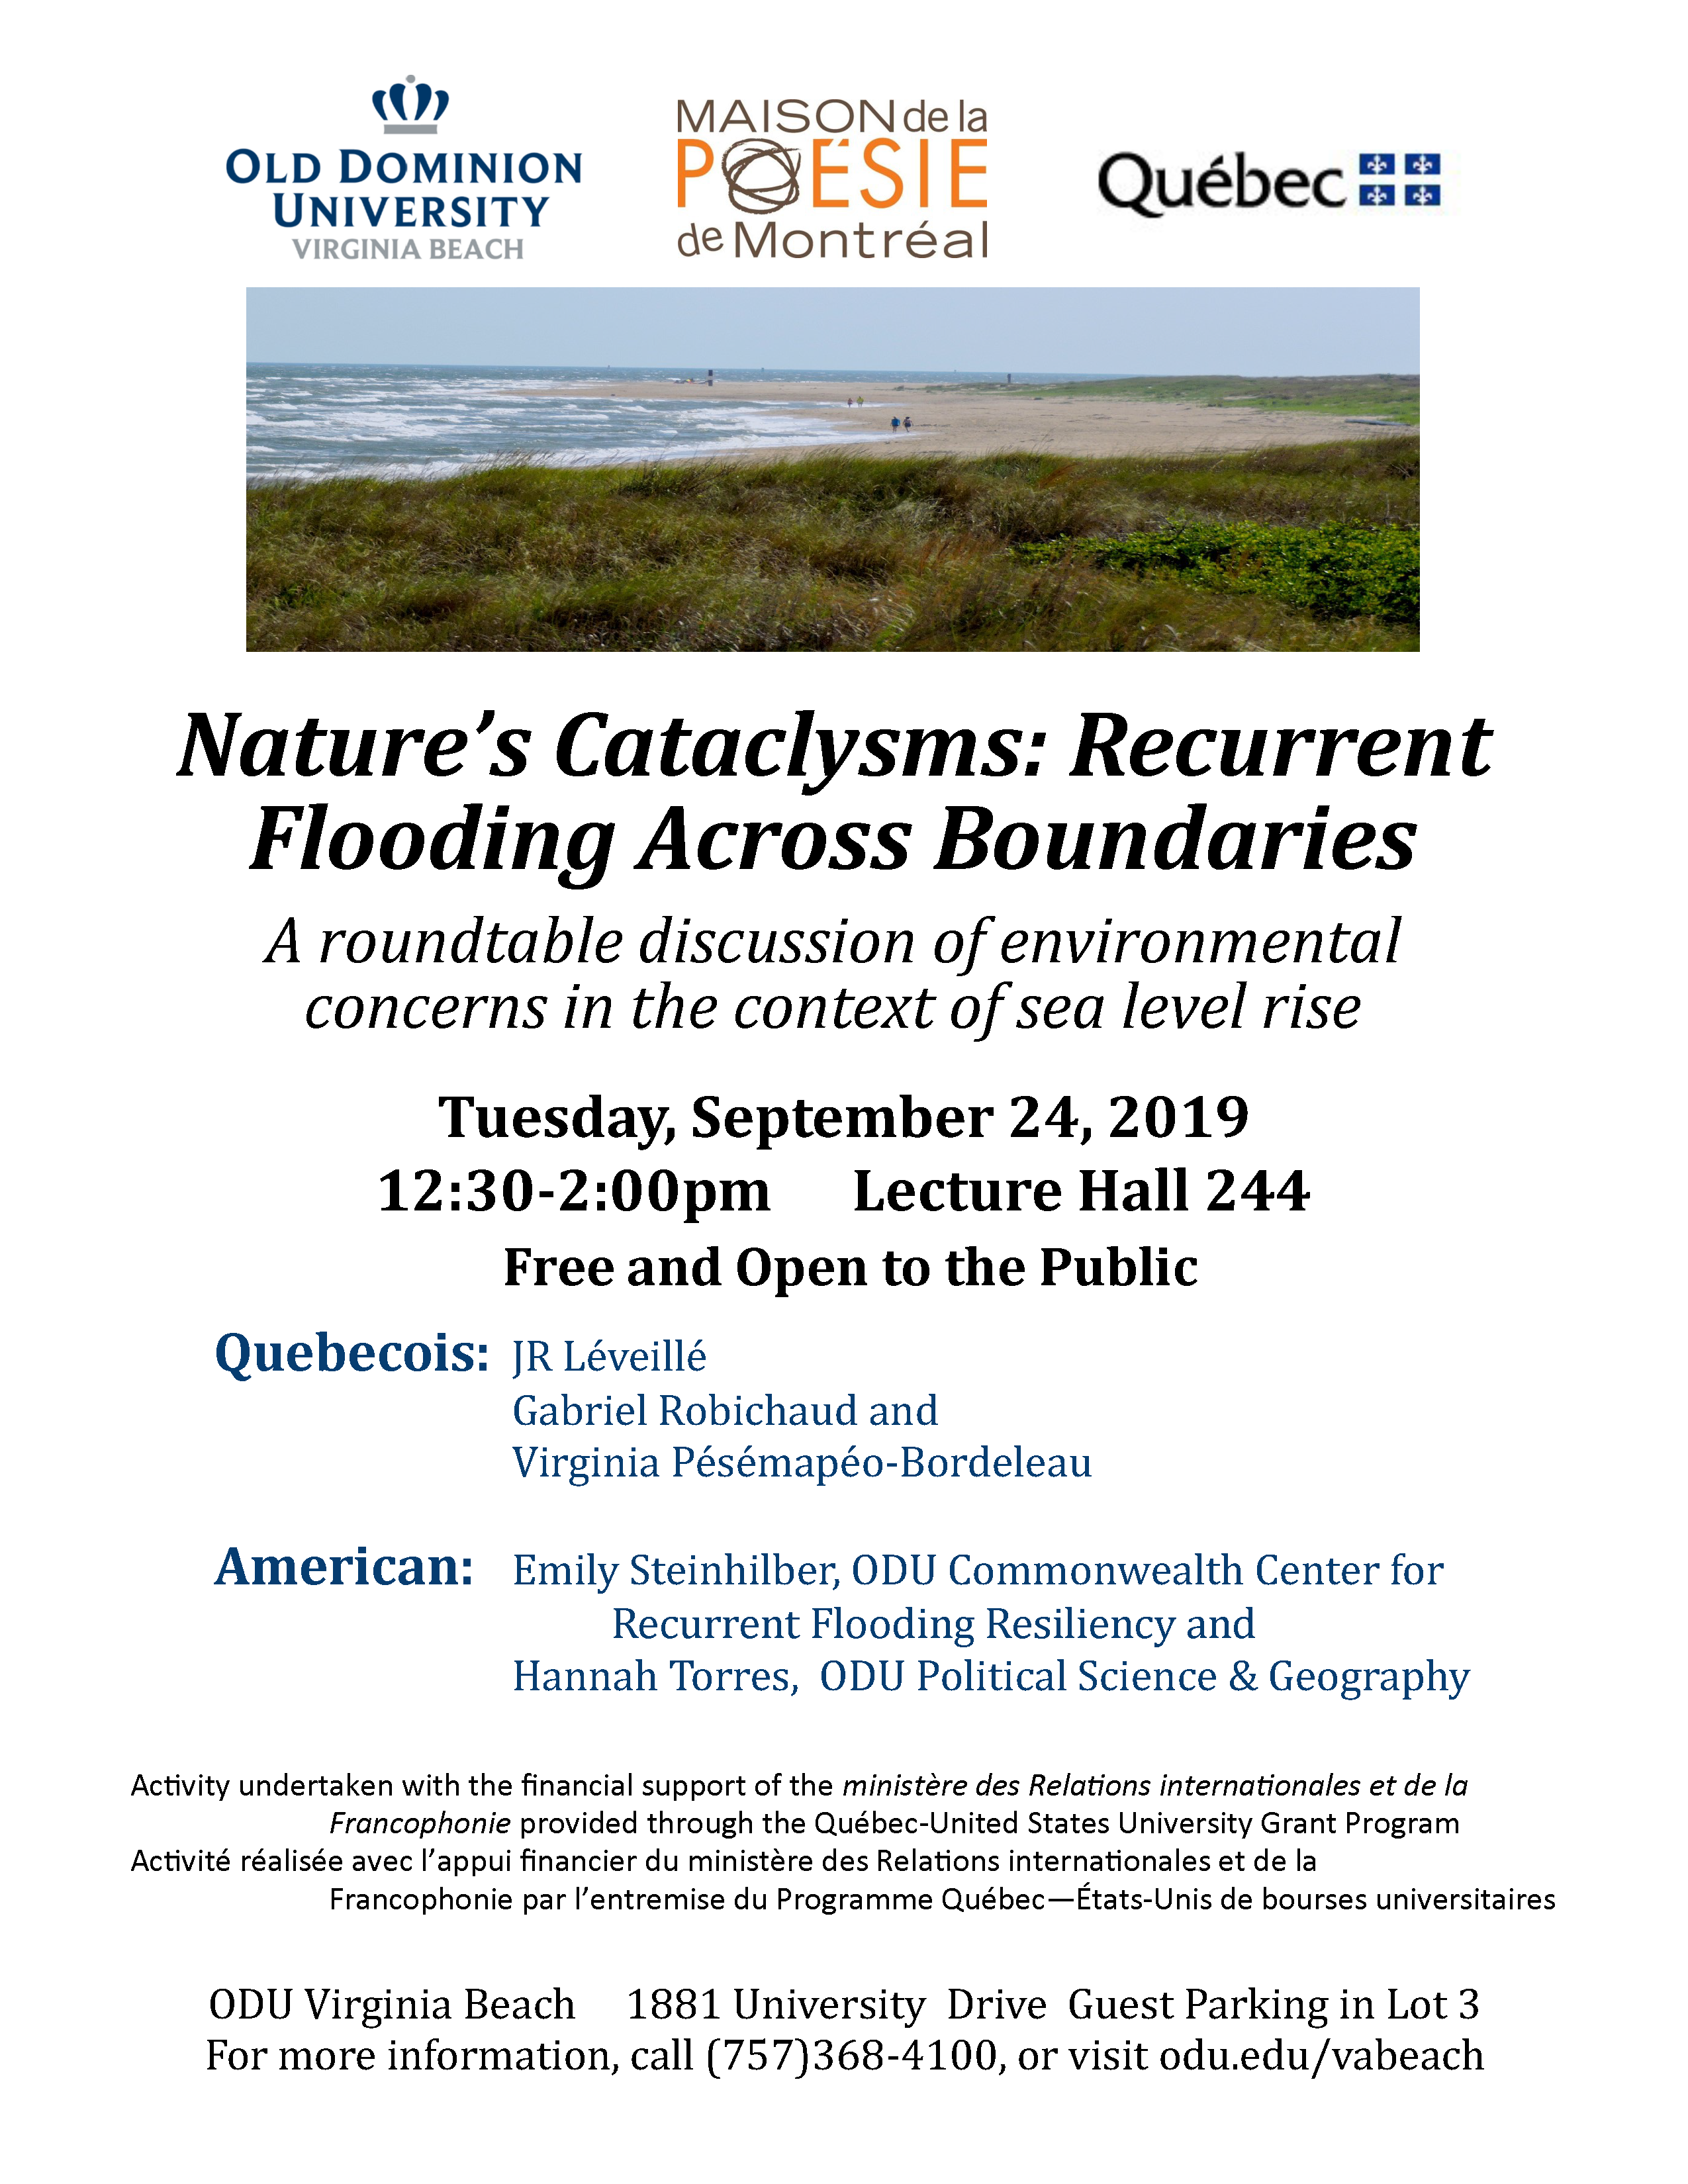 Nature's Cataclysms: Recurrent Flooding Across Boundaries